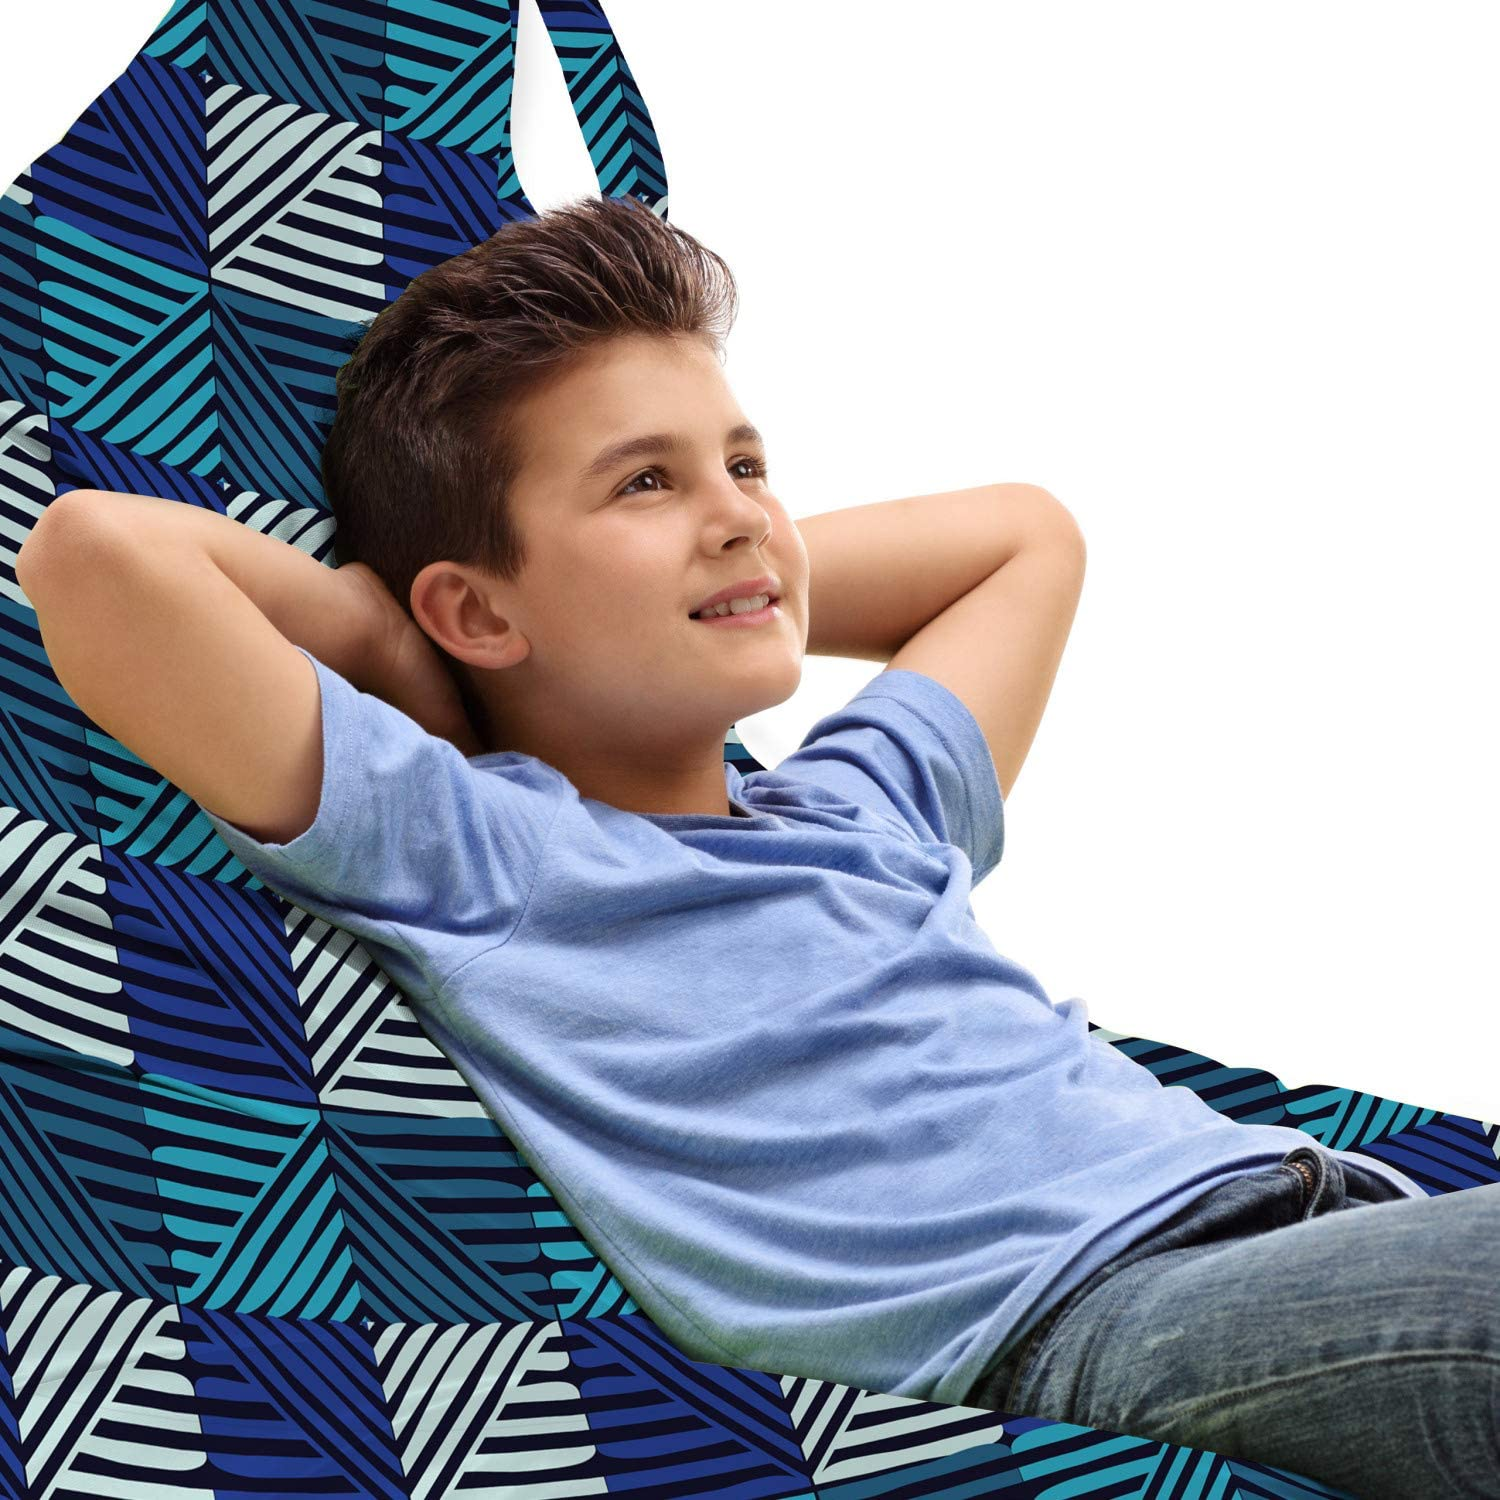 Lunarable Abstract Lounger Chair Bag and Diagonal St New products, world's highest quality popular! Max 63% OFF Horizontal